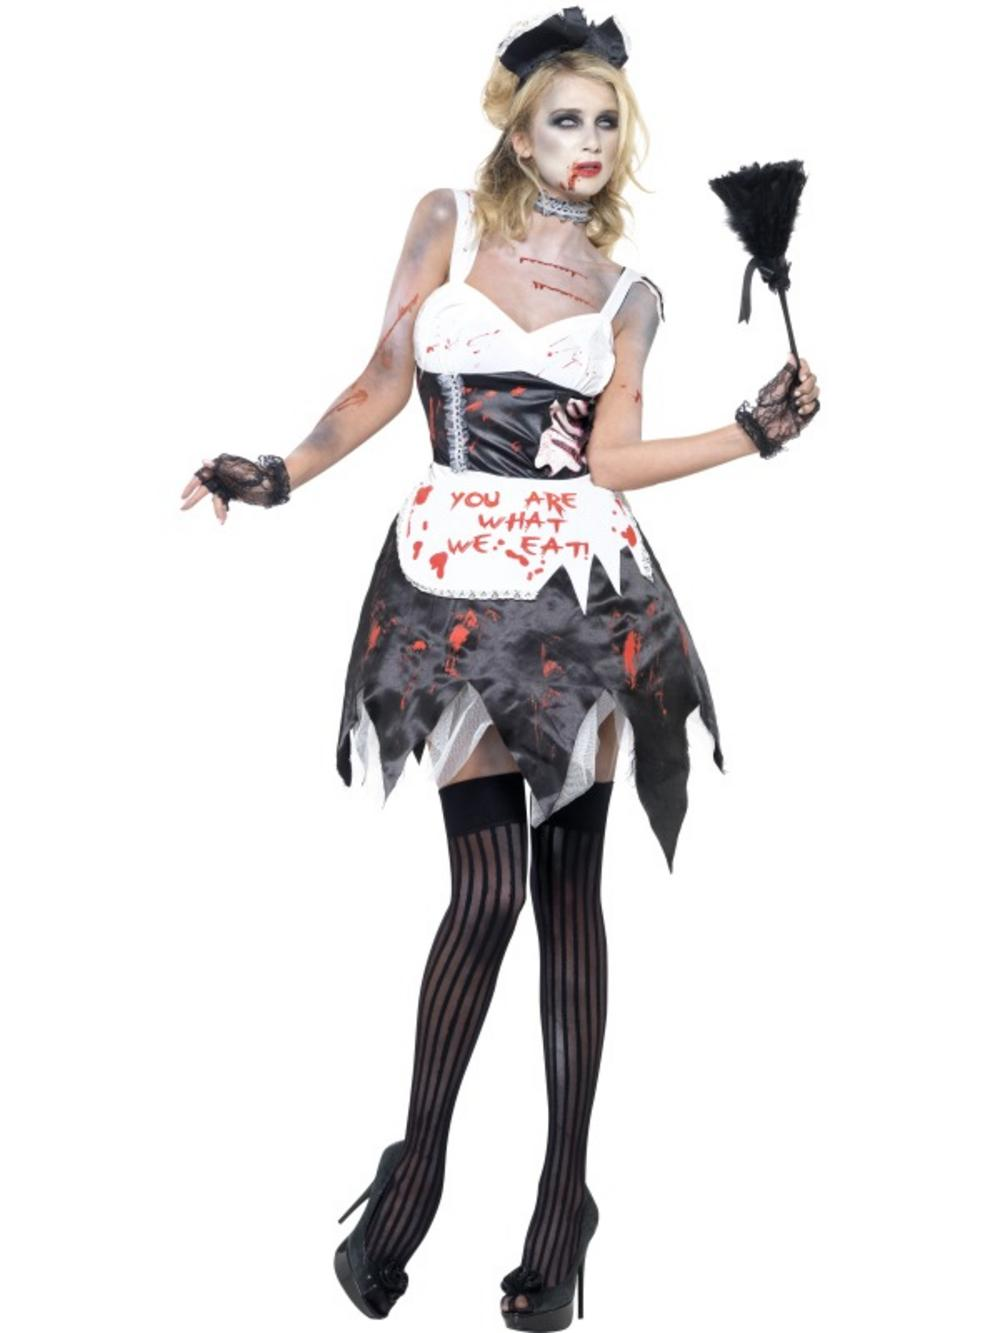 Waitress Halloween Costume oktoberfest beer maid dress sweet girl waitress beer girl green fancy dress festival costume halloween costumes Item Details Adult Fever Zombie French Maid Fancy Dress Costume Halloween Waitress Undead